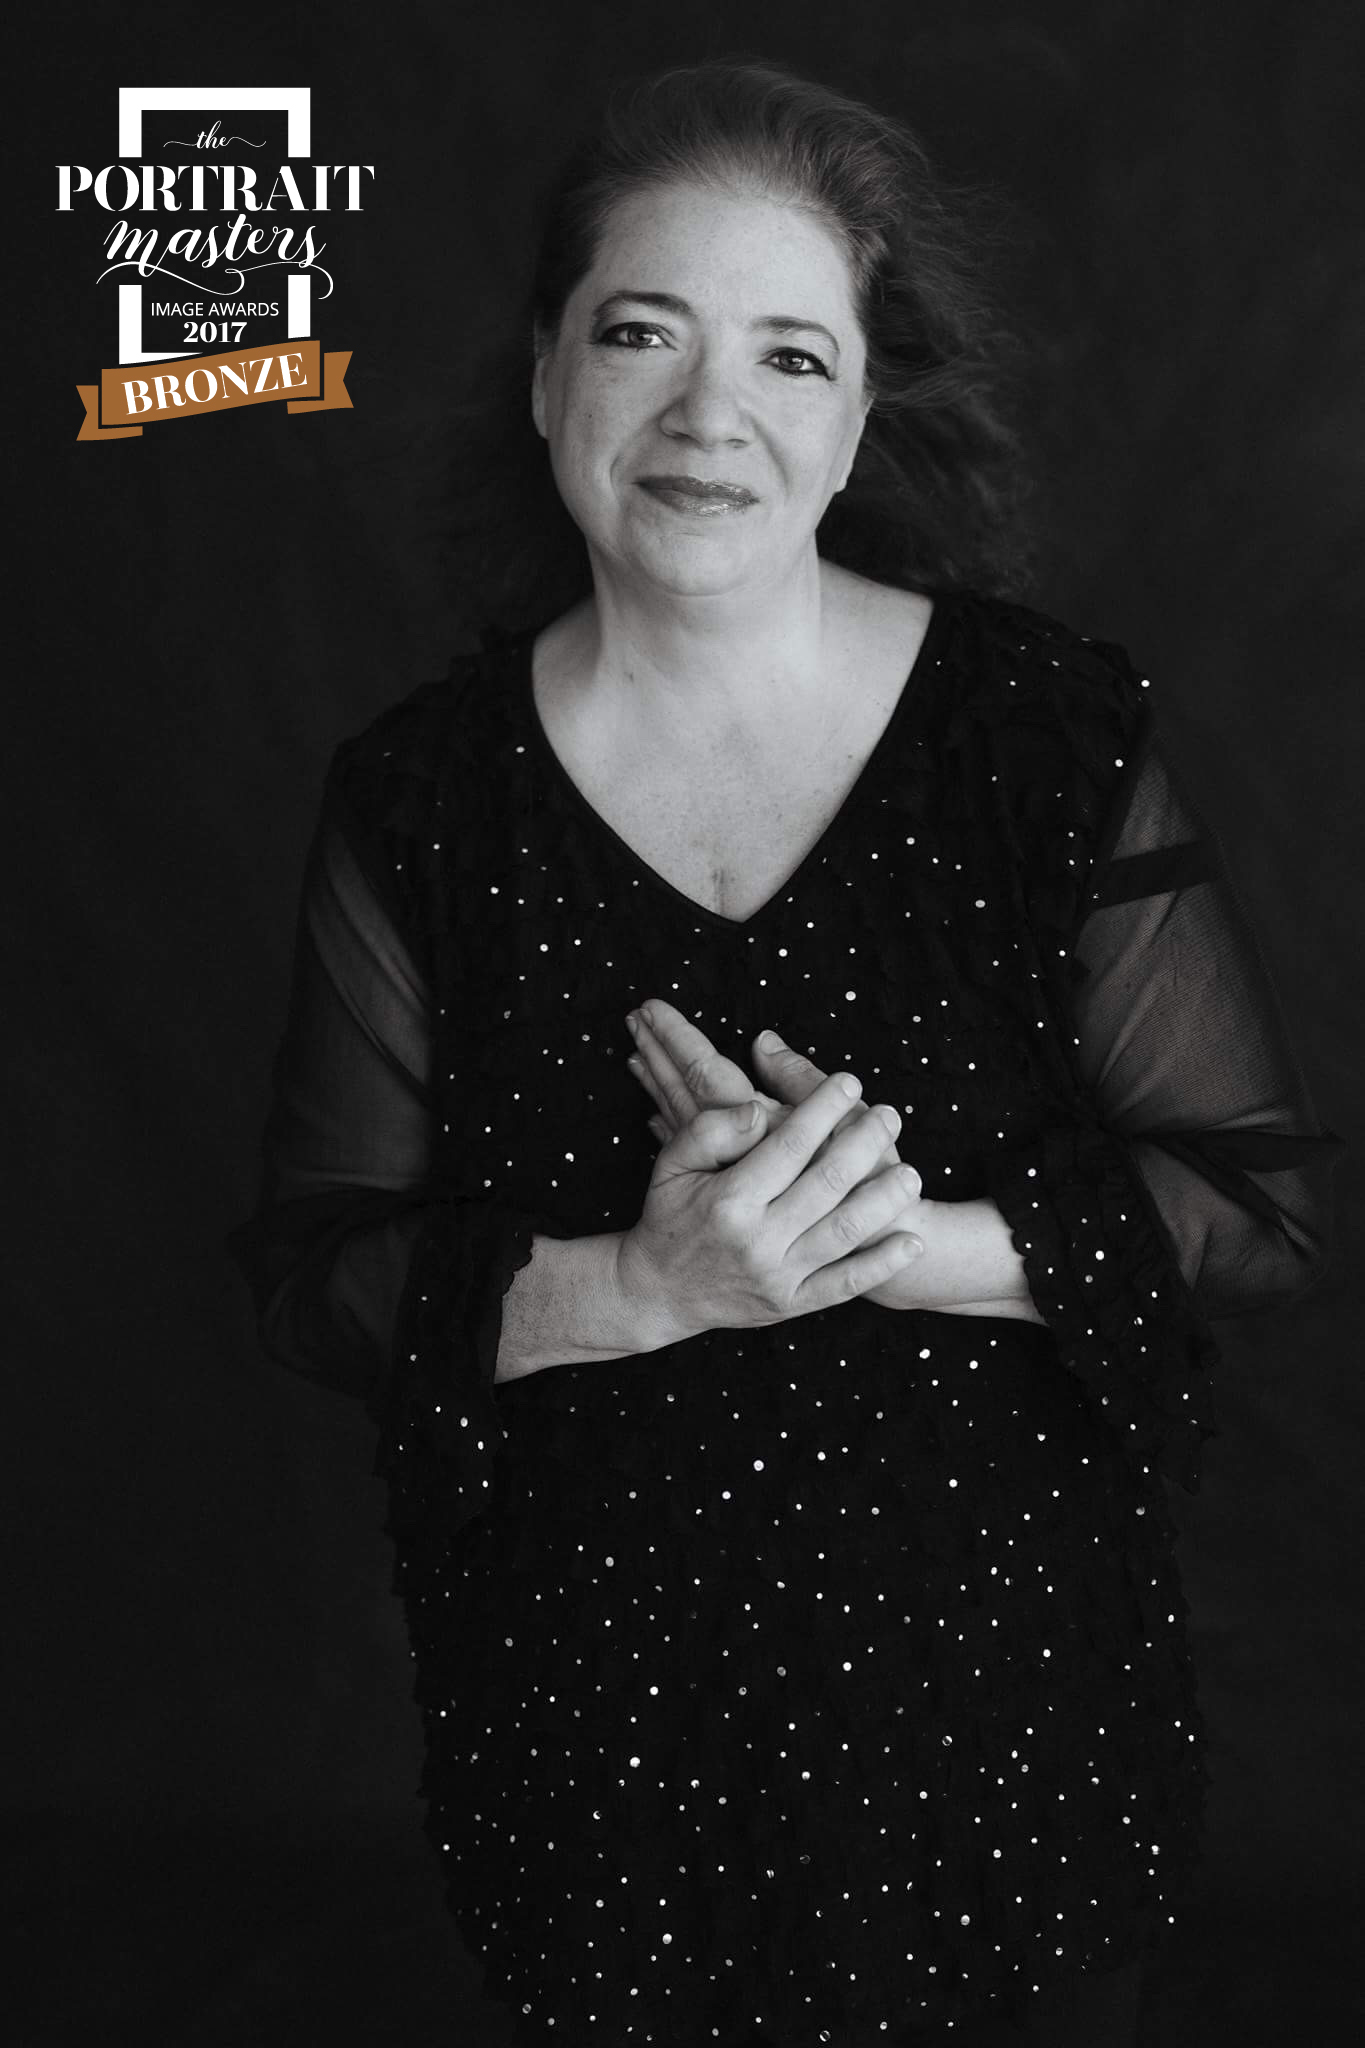 """""""I am flabbergasted that a photo you did of me captured an award. I am honored! Congratulations!"""" - Rose Marie Viera"""